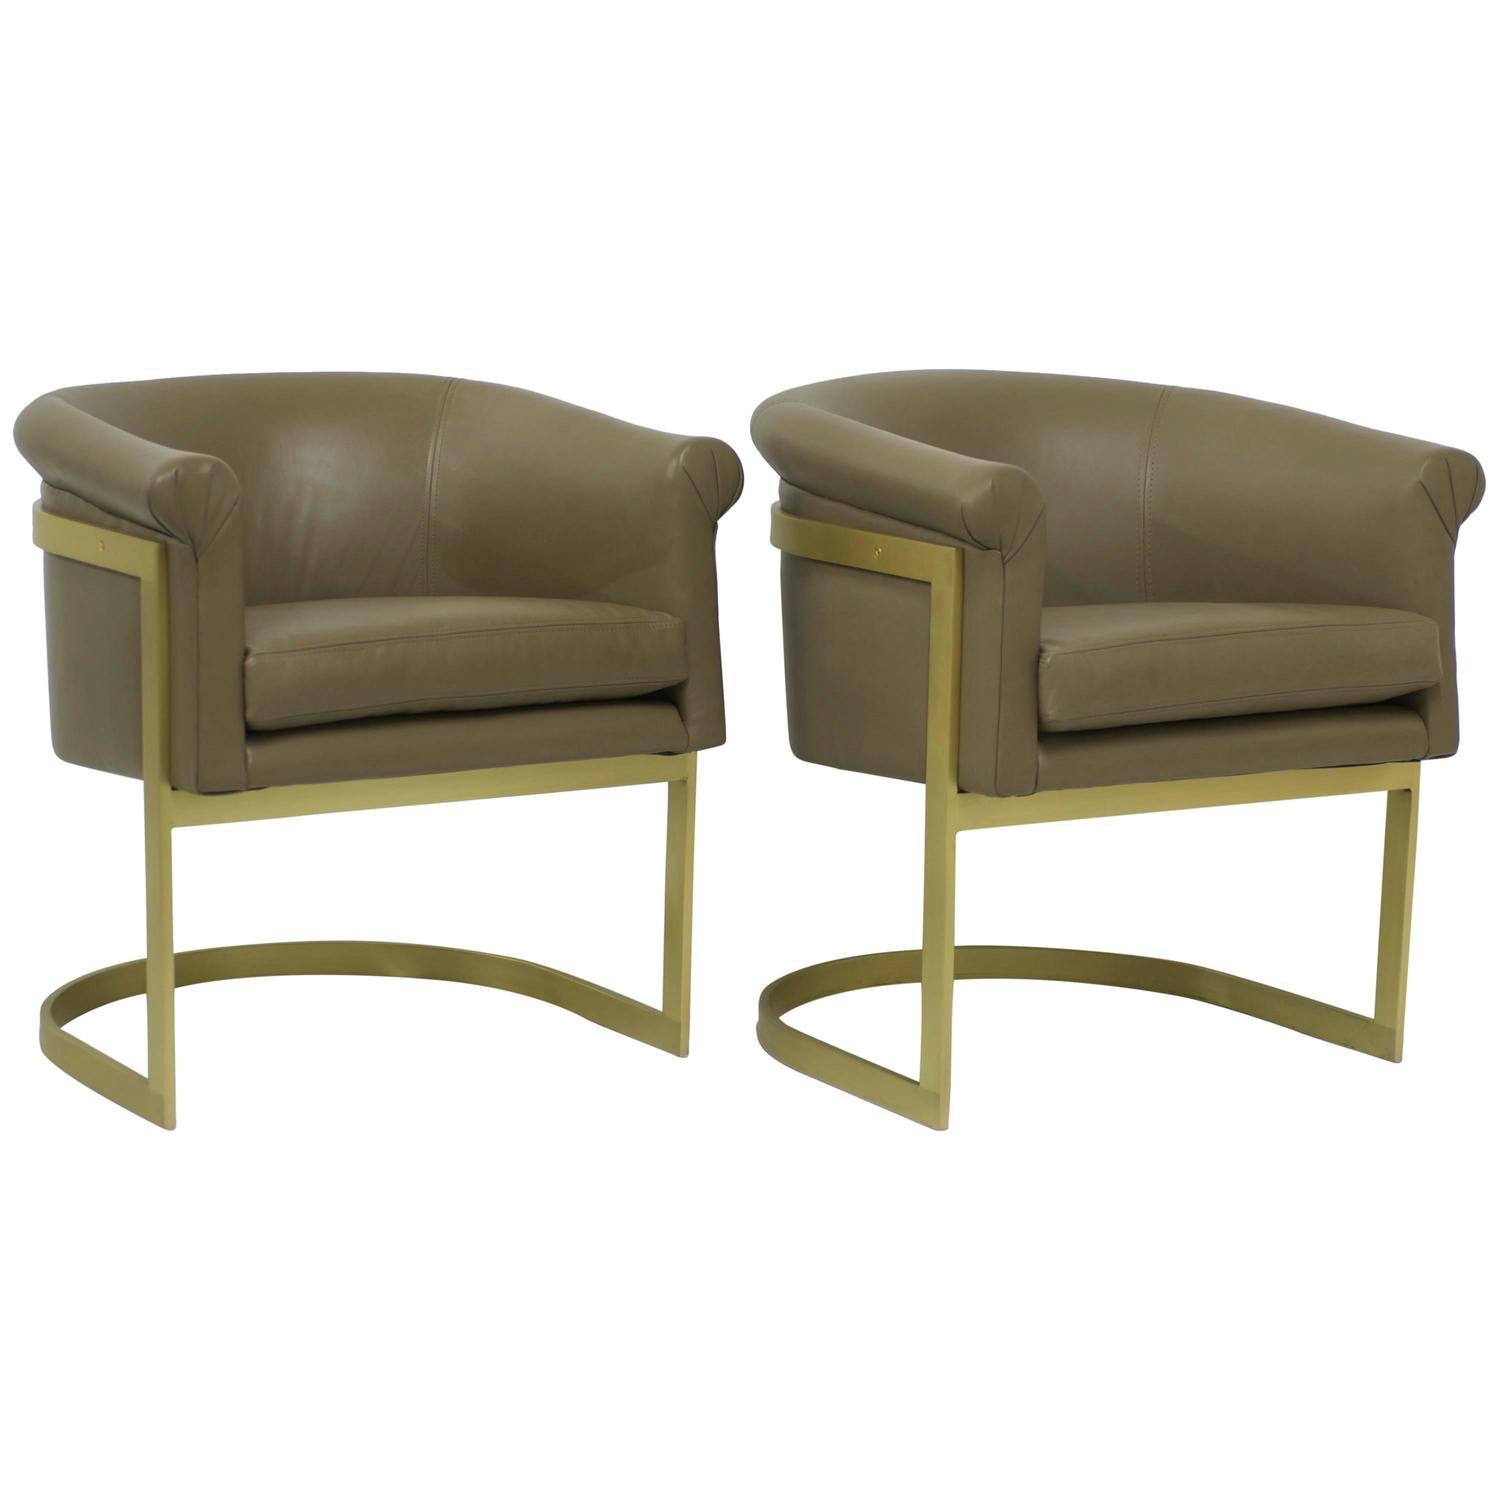 Matt Brass And Leather Petite Barrel Back Milo Baughman Attributed Chairs  For Sale At 1stdibs